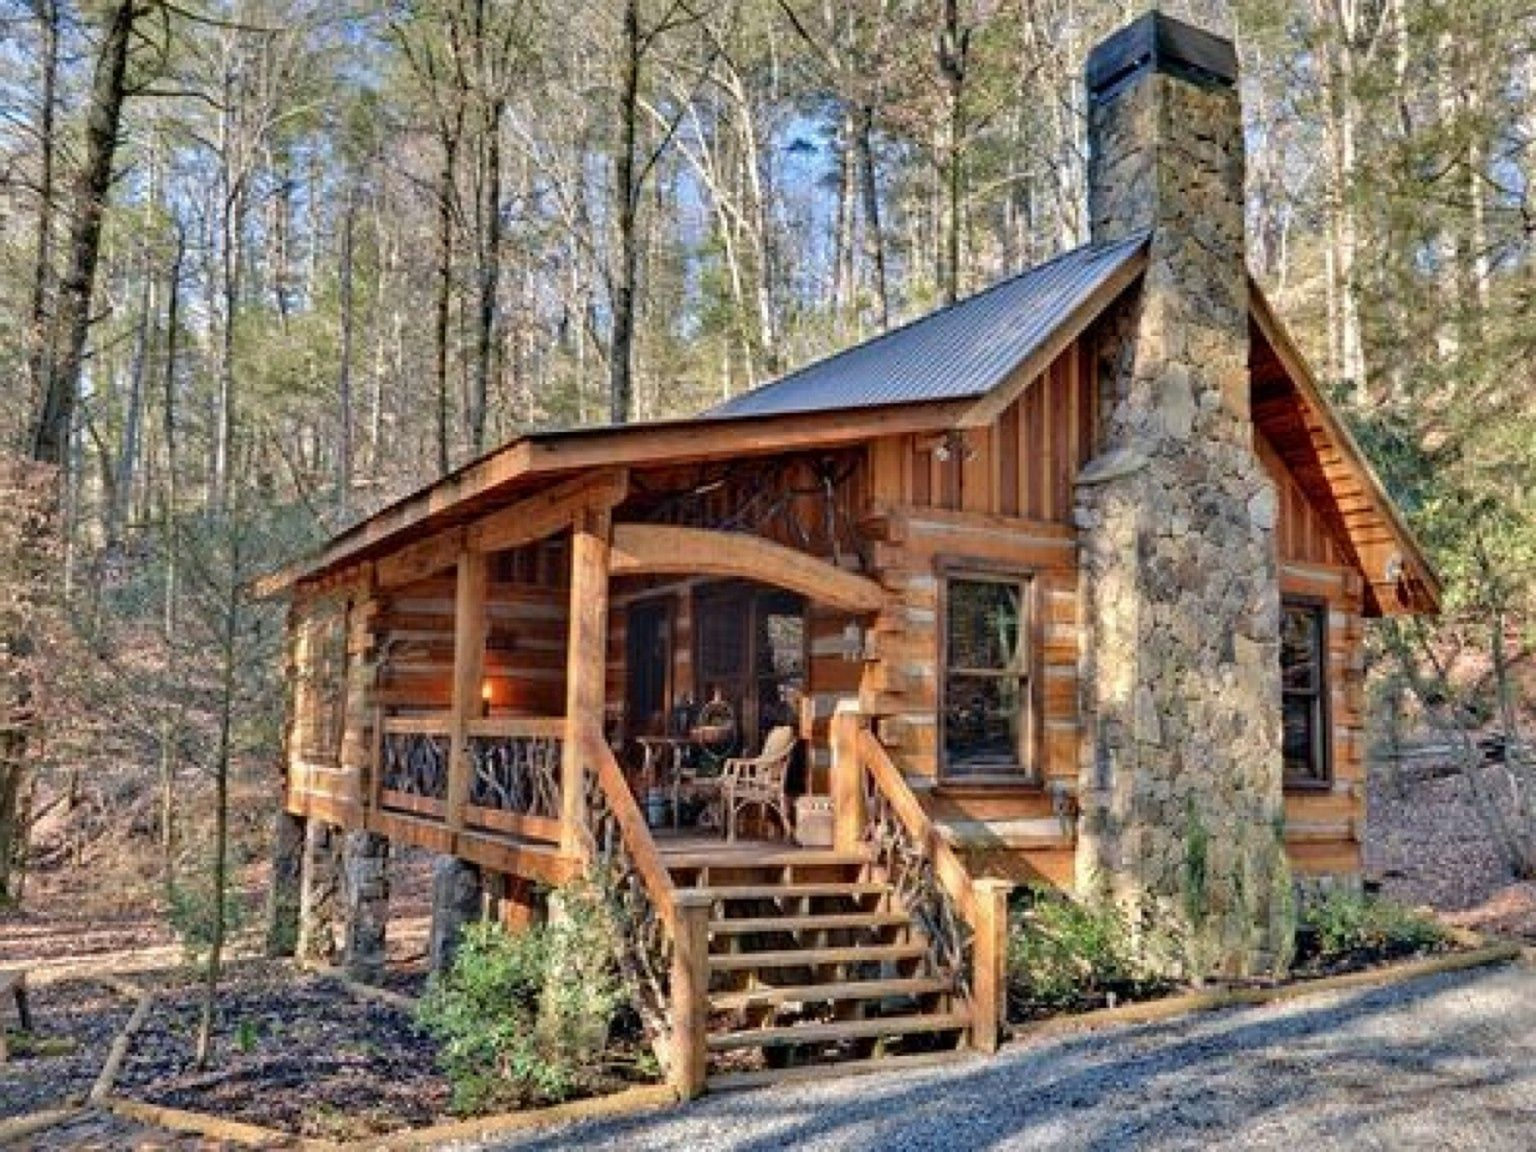 30 Comfortable Small Log Home Design Ideas For Best Inspirations Small Log Homes Small Cabin Interiors Log Home Designs